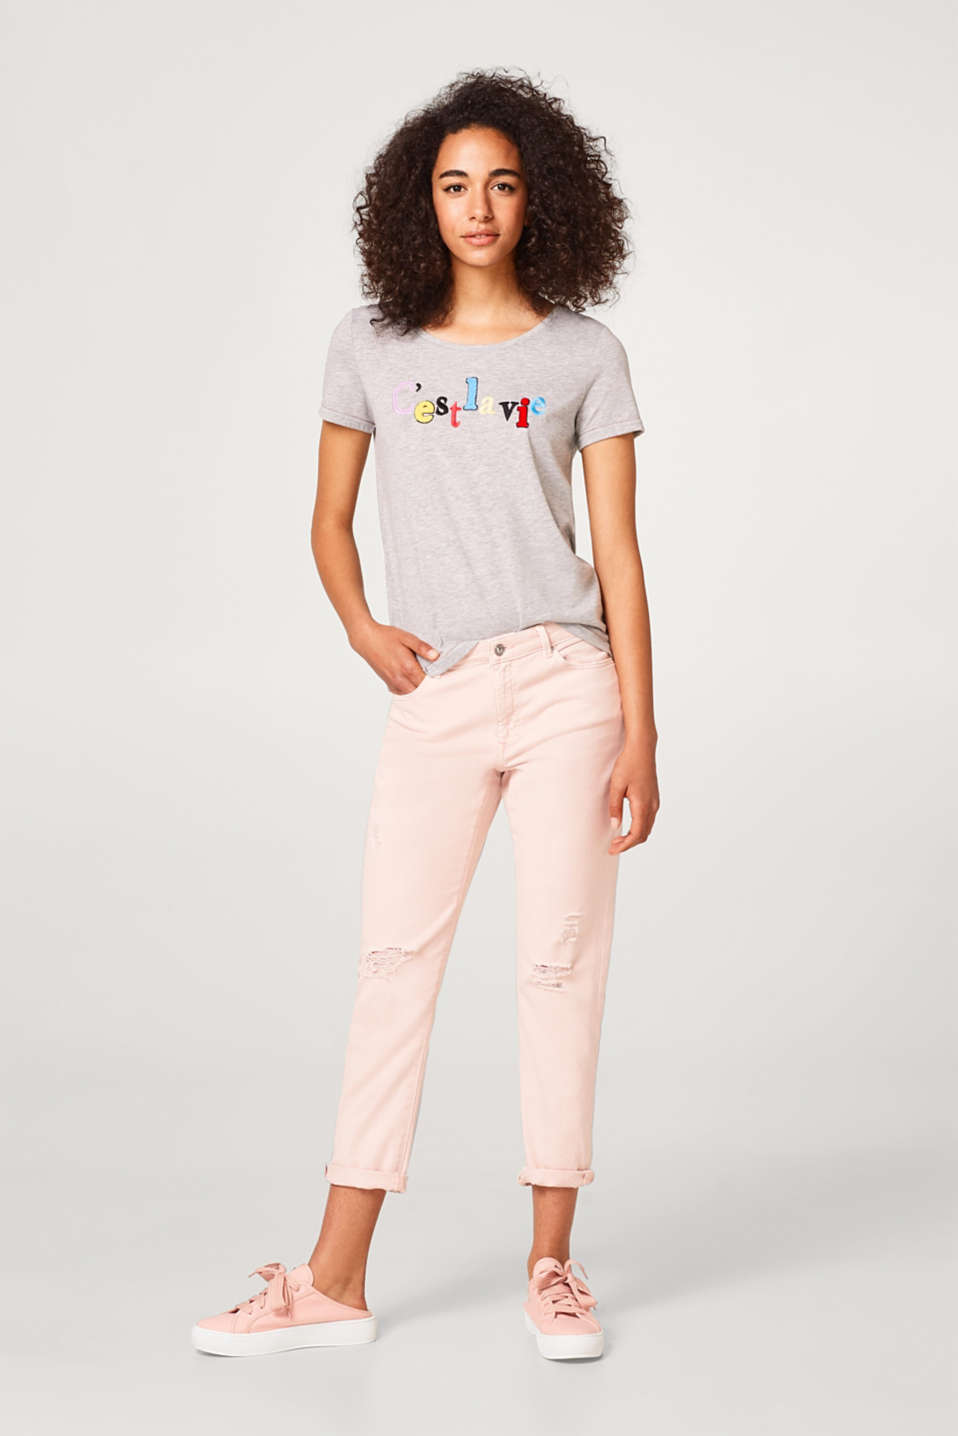 Loose T-shirt with colourful embroidered lettering